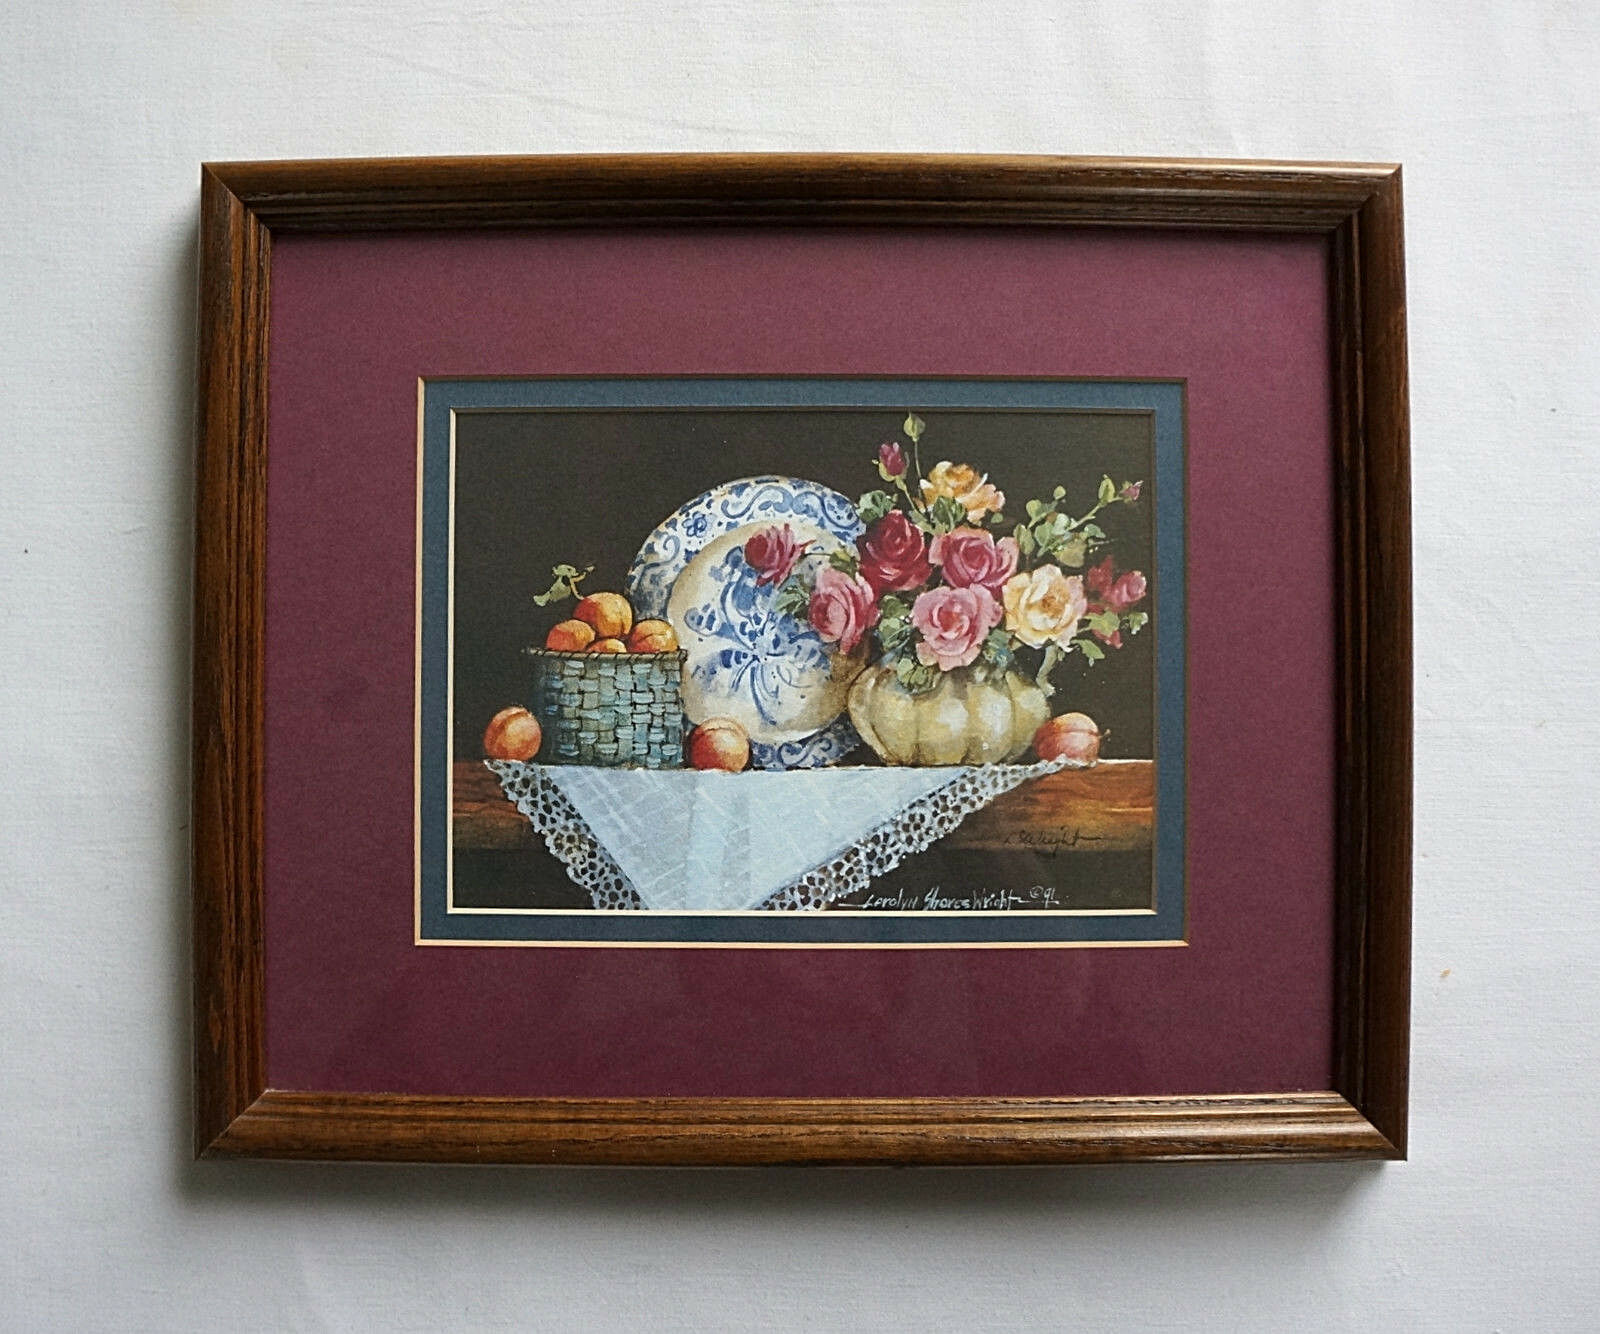 Carolyn Shores Wright Framed Print Flowers and Collectibles Still Life Signed